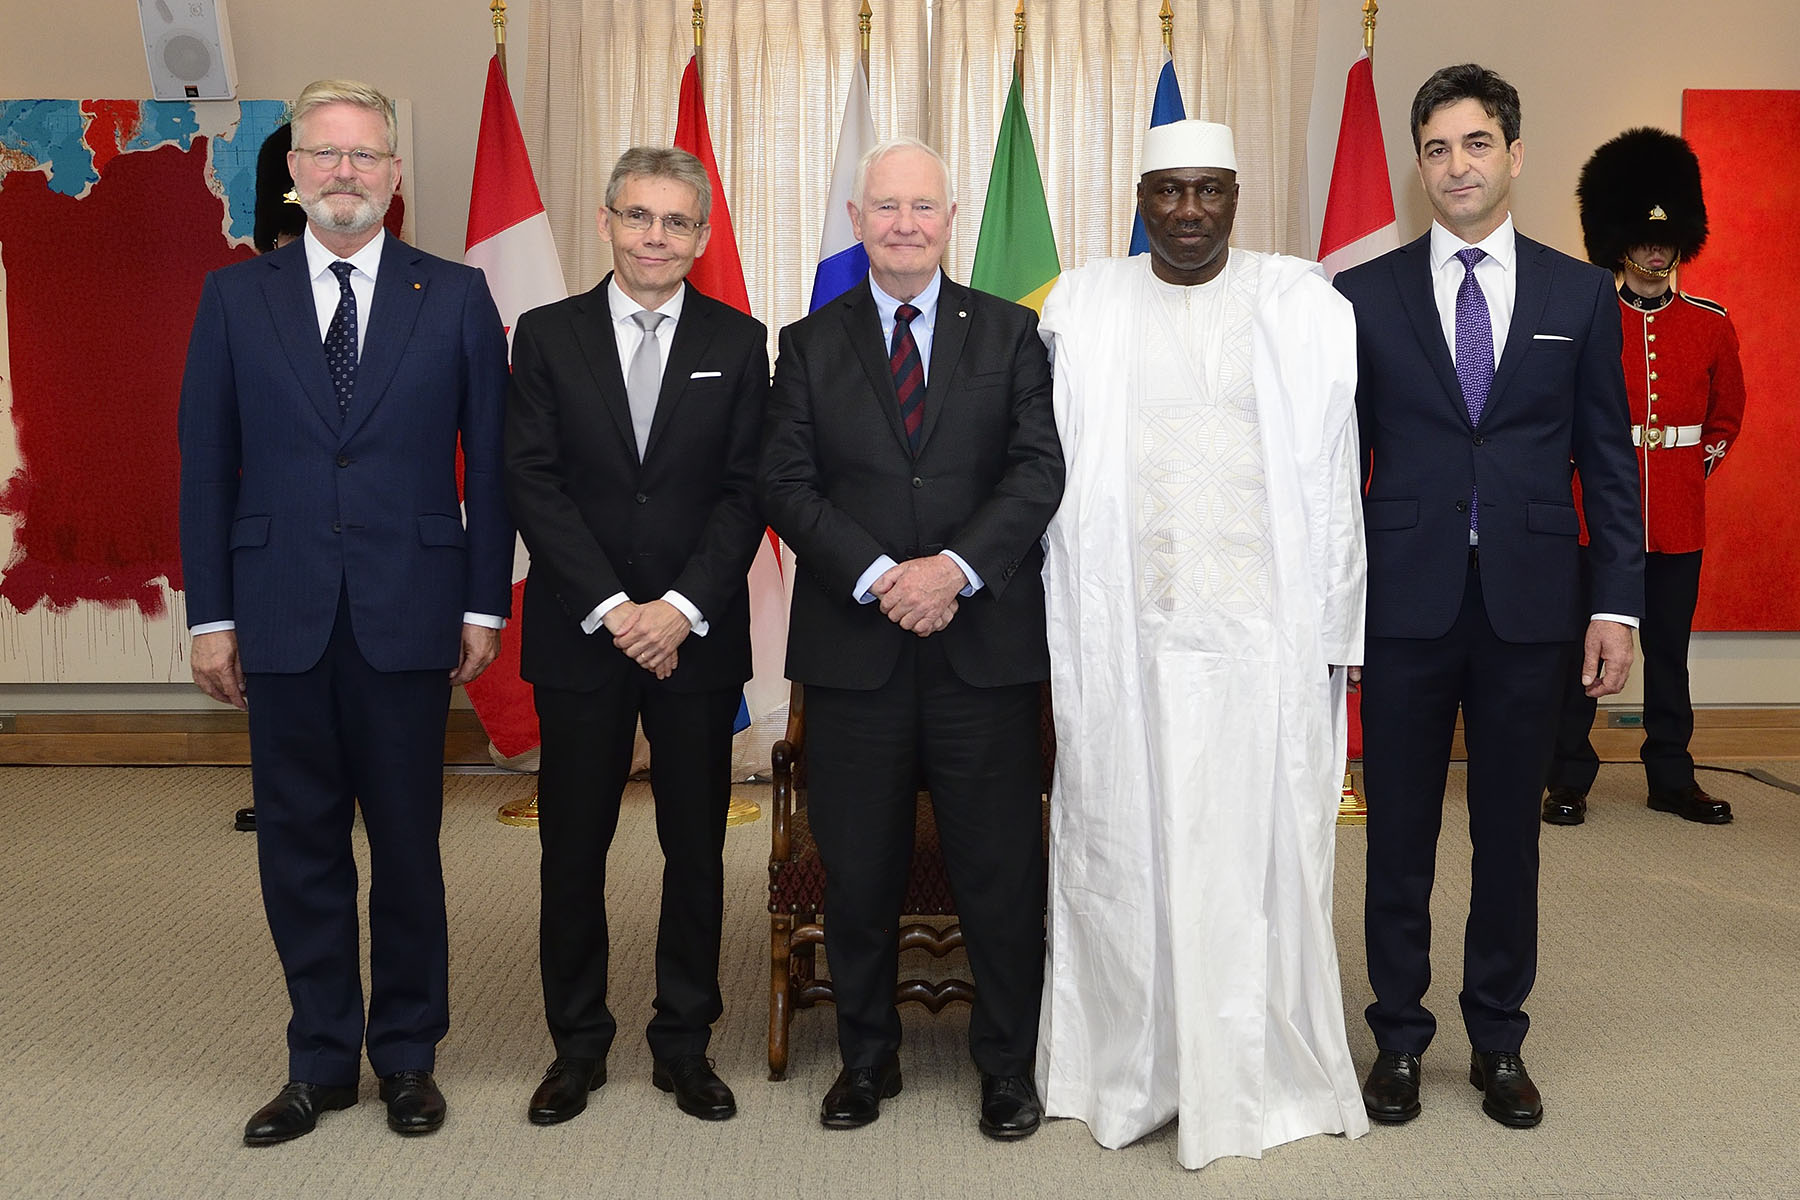 Letters of credence are the official documents by which new heads of diplomatic missions are presented by their head of State as their official representative. Currently, there are more than 170 heads of diplomatic missions accredited to Canada.